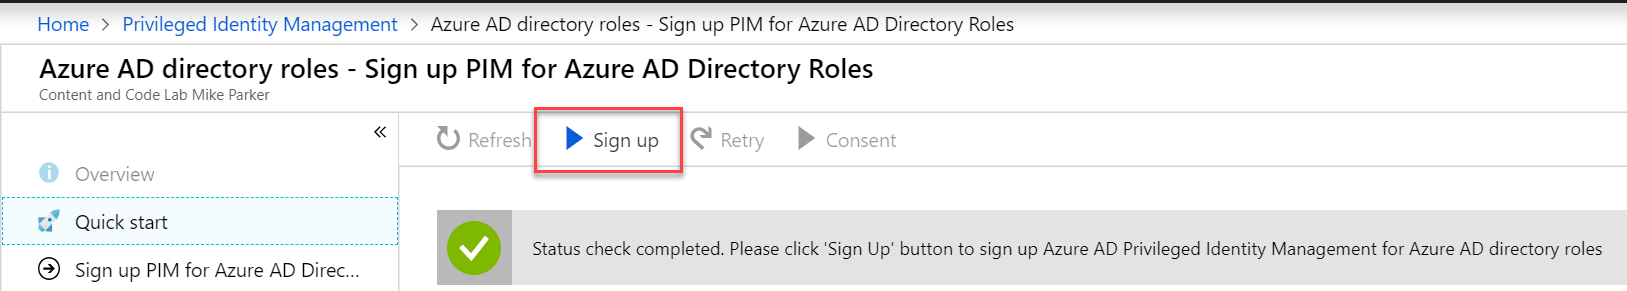 Azure AD Directory roles - Sign up for PIM for Azure AD Directory Roles